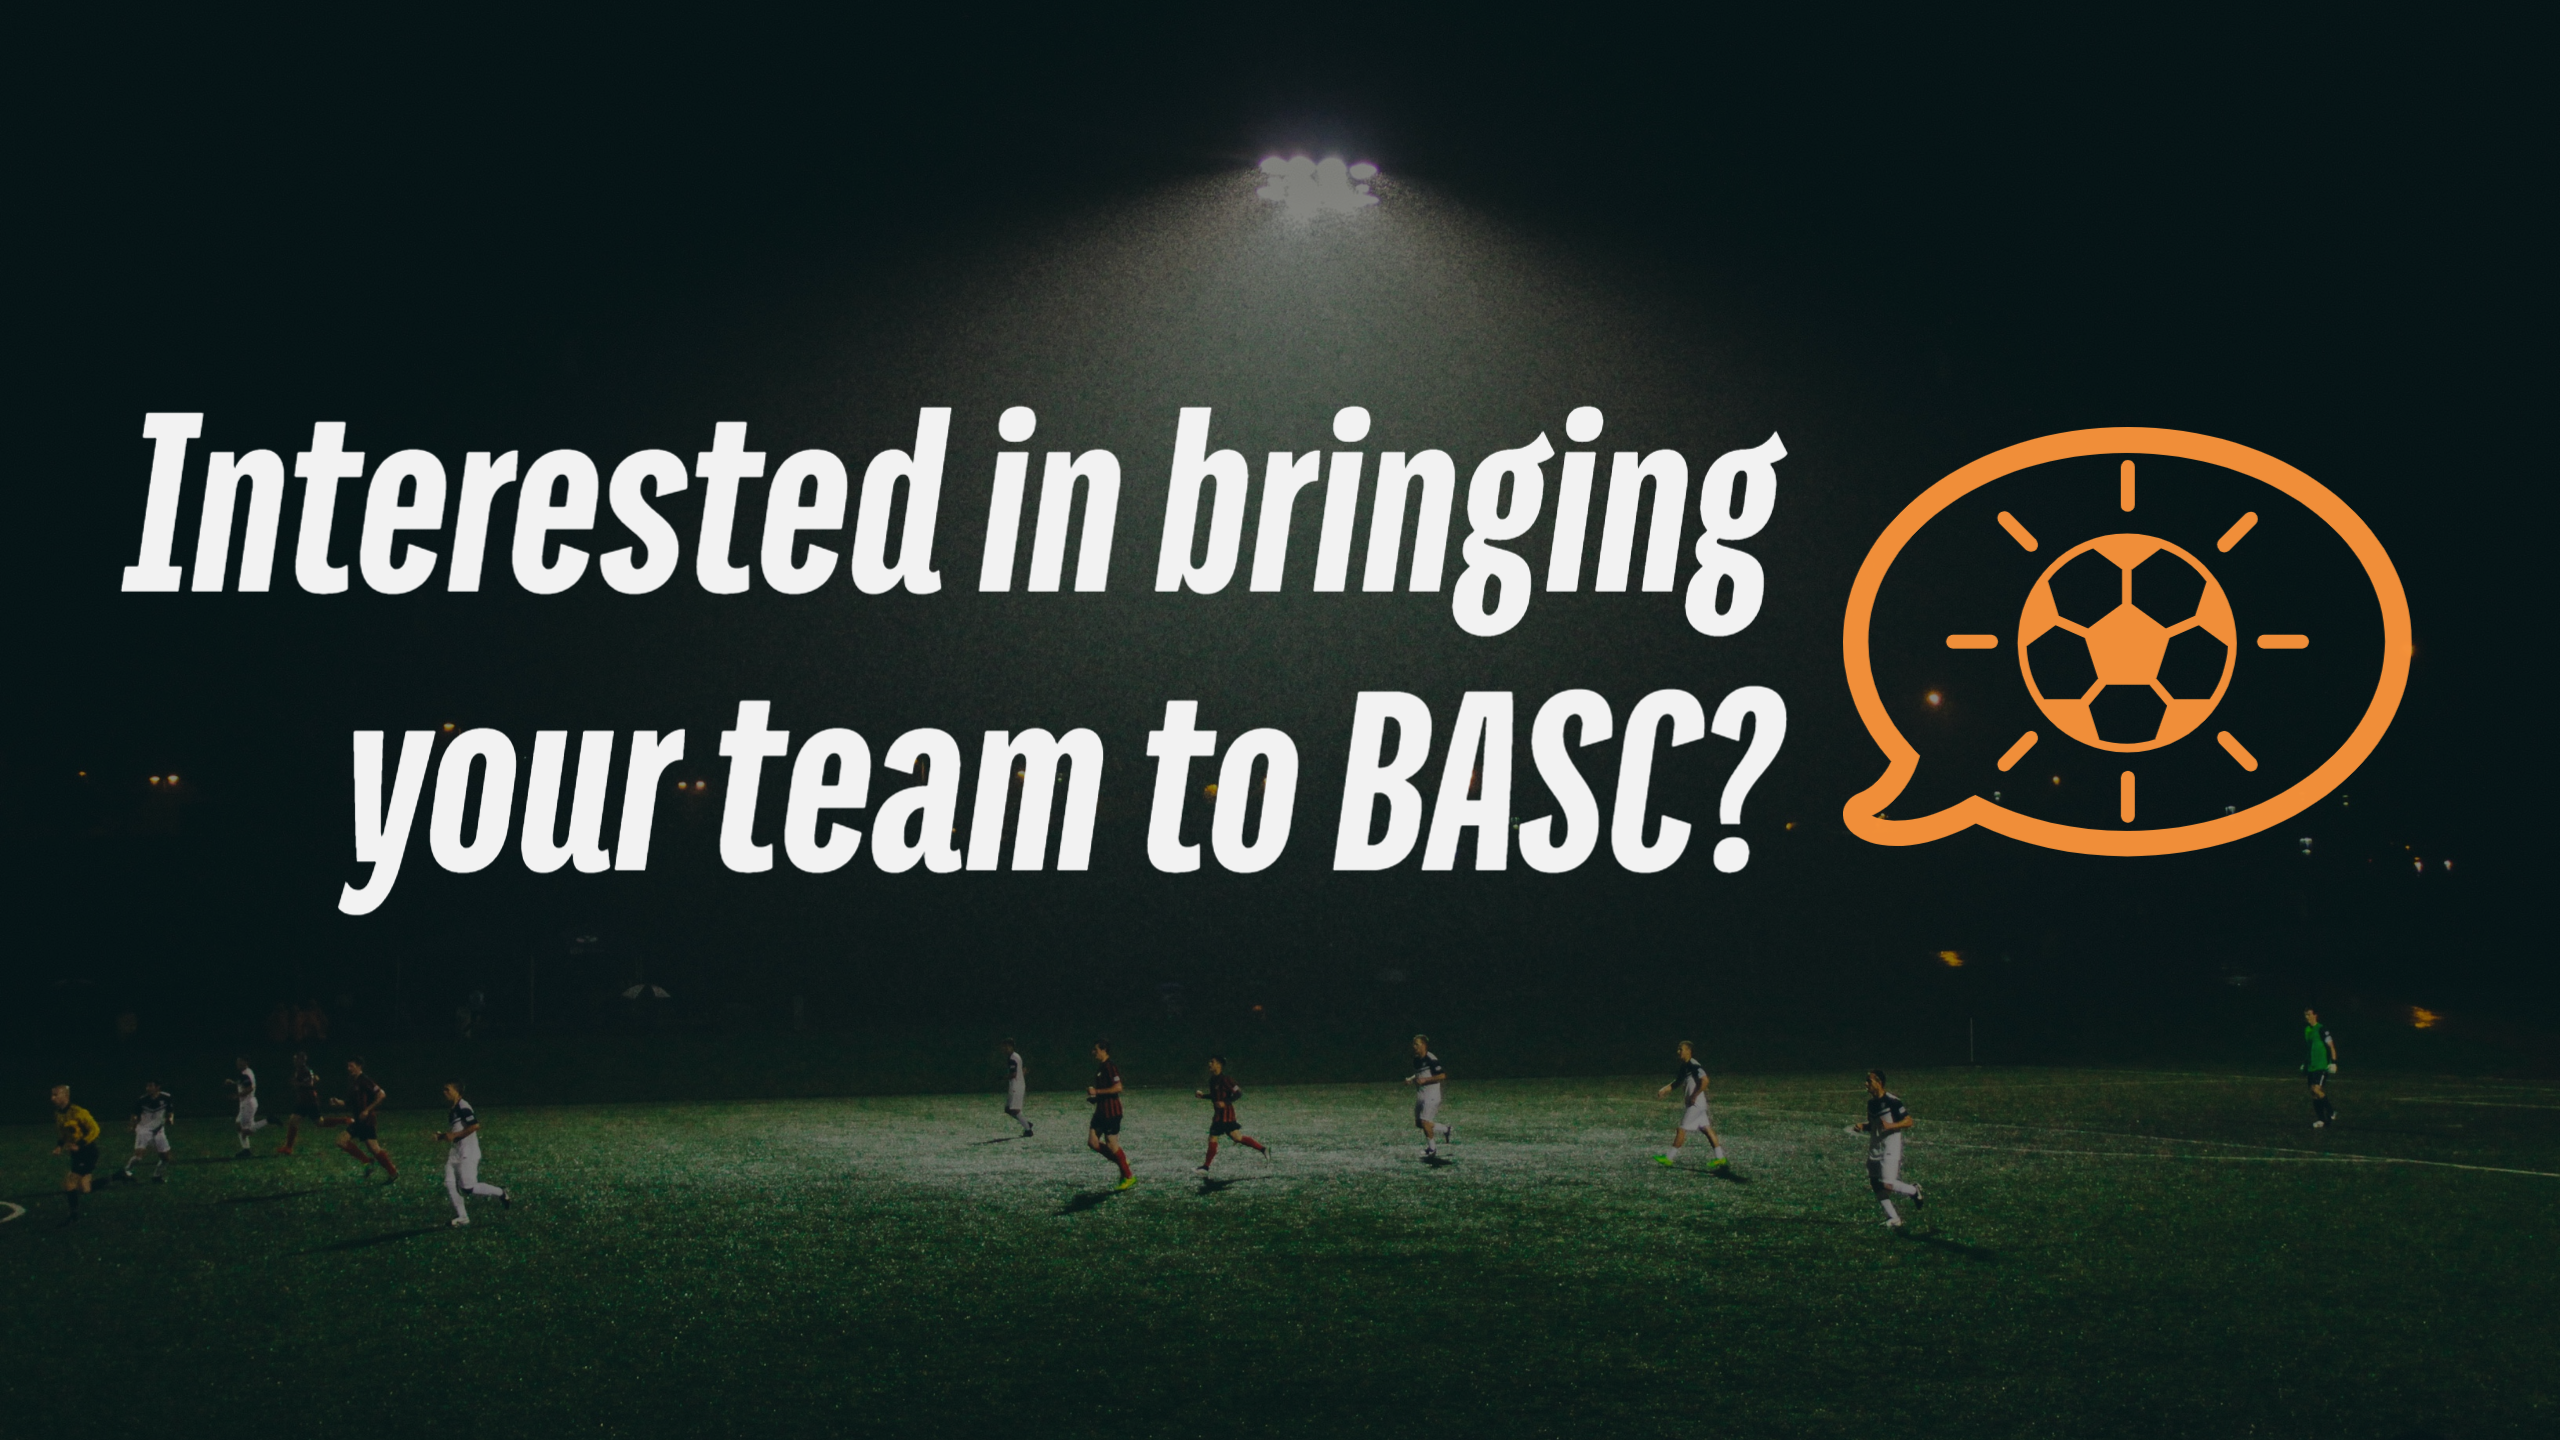 Bring Your Team To BA Soccer!